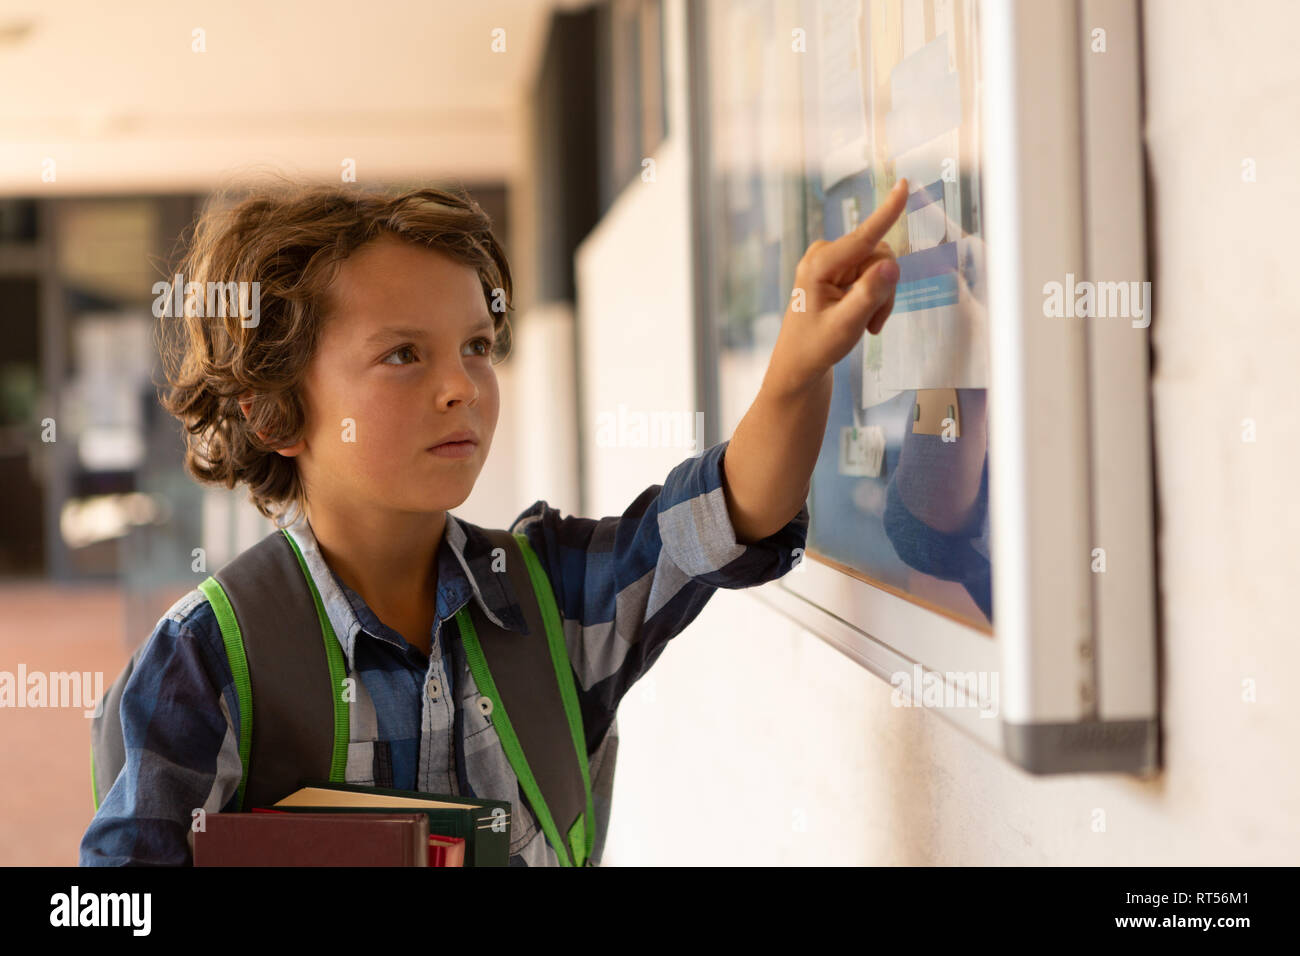 Schoolboy pointing at noticeboard in the corridor - Stock Image